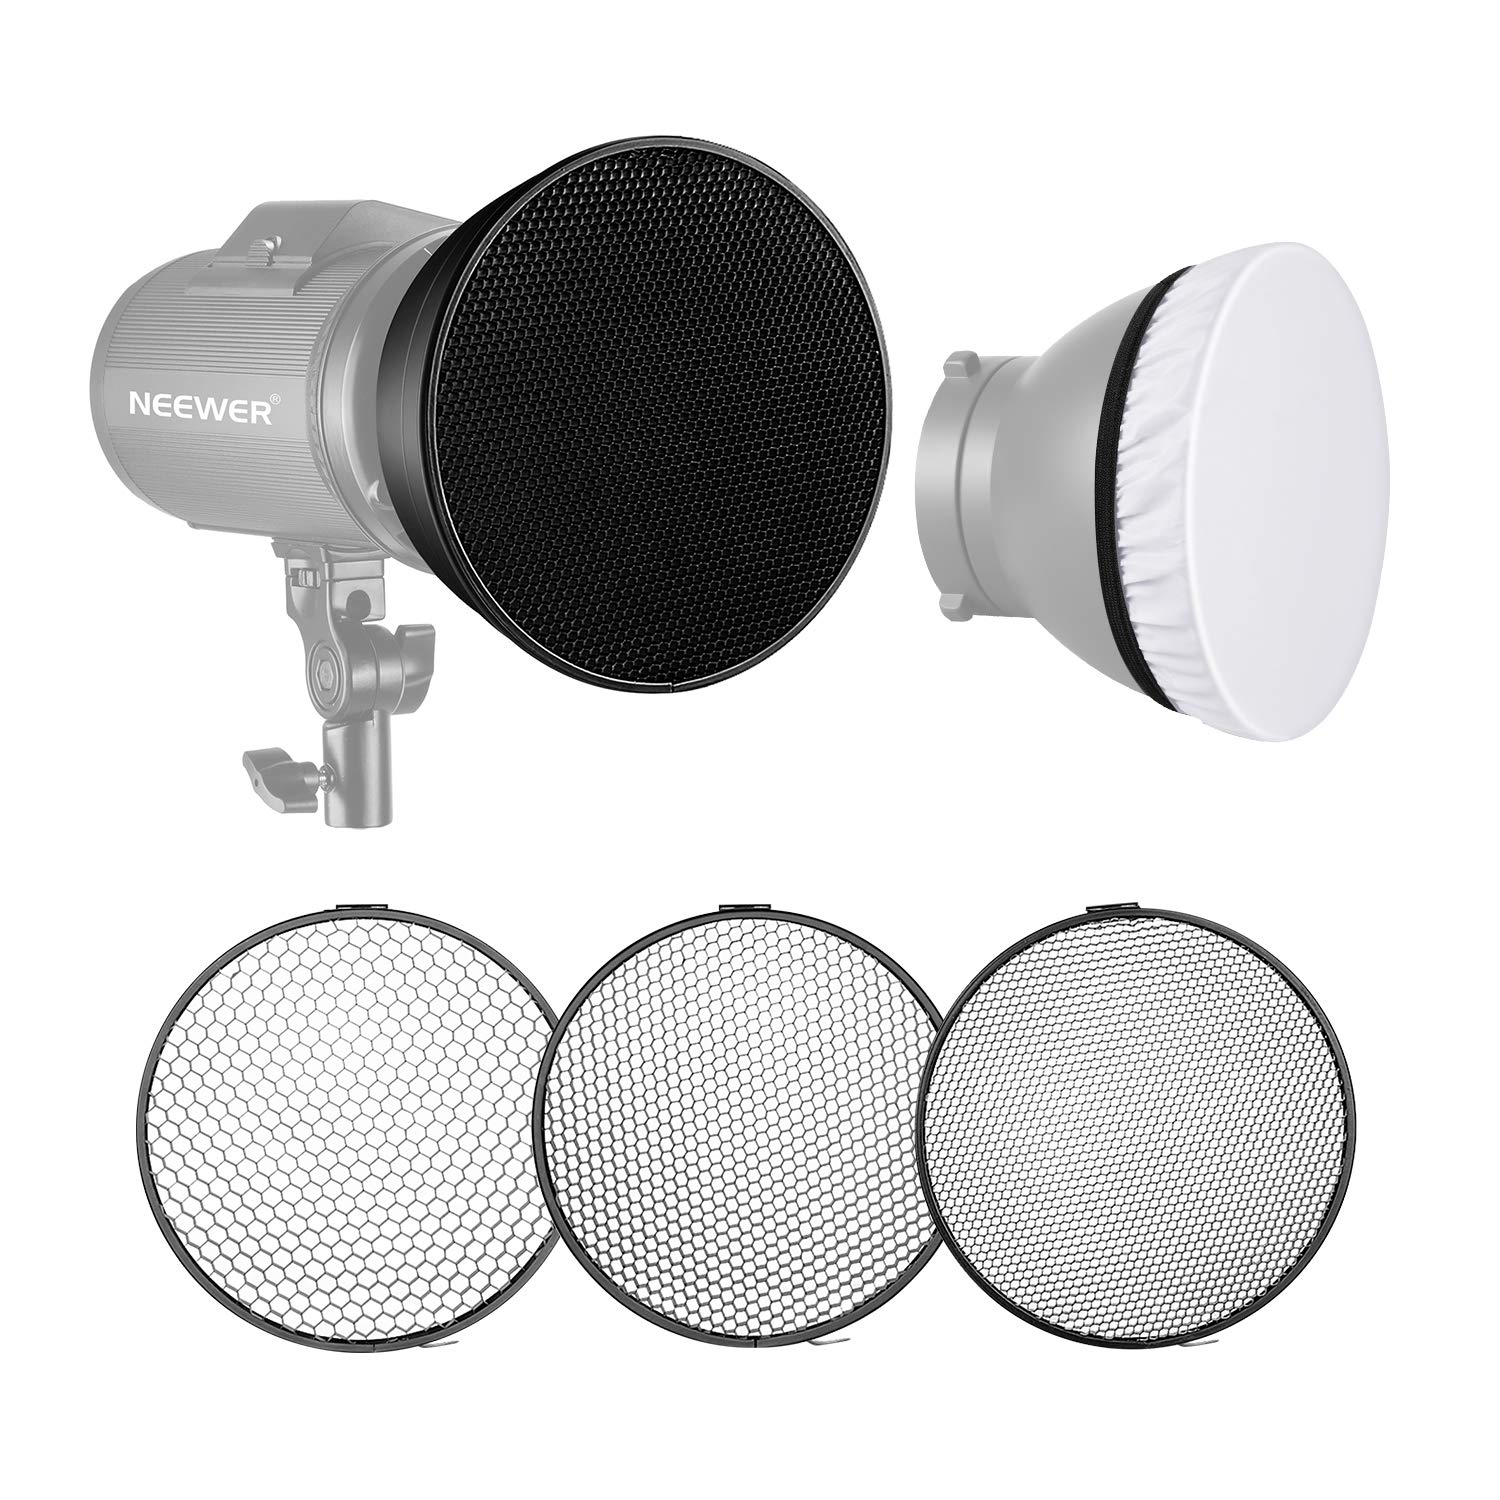 Neewer Standard Reflector 7 inches/18 Centimeters Soft Diffuser with 20/40/60 Degree Honeycomb Grid for Bowens Mount Studio Flash Strobe Light Monolight by Neewer